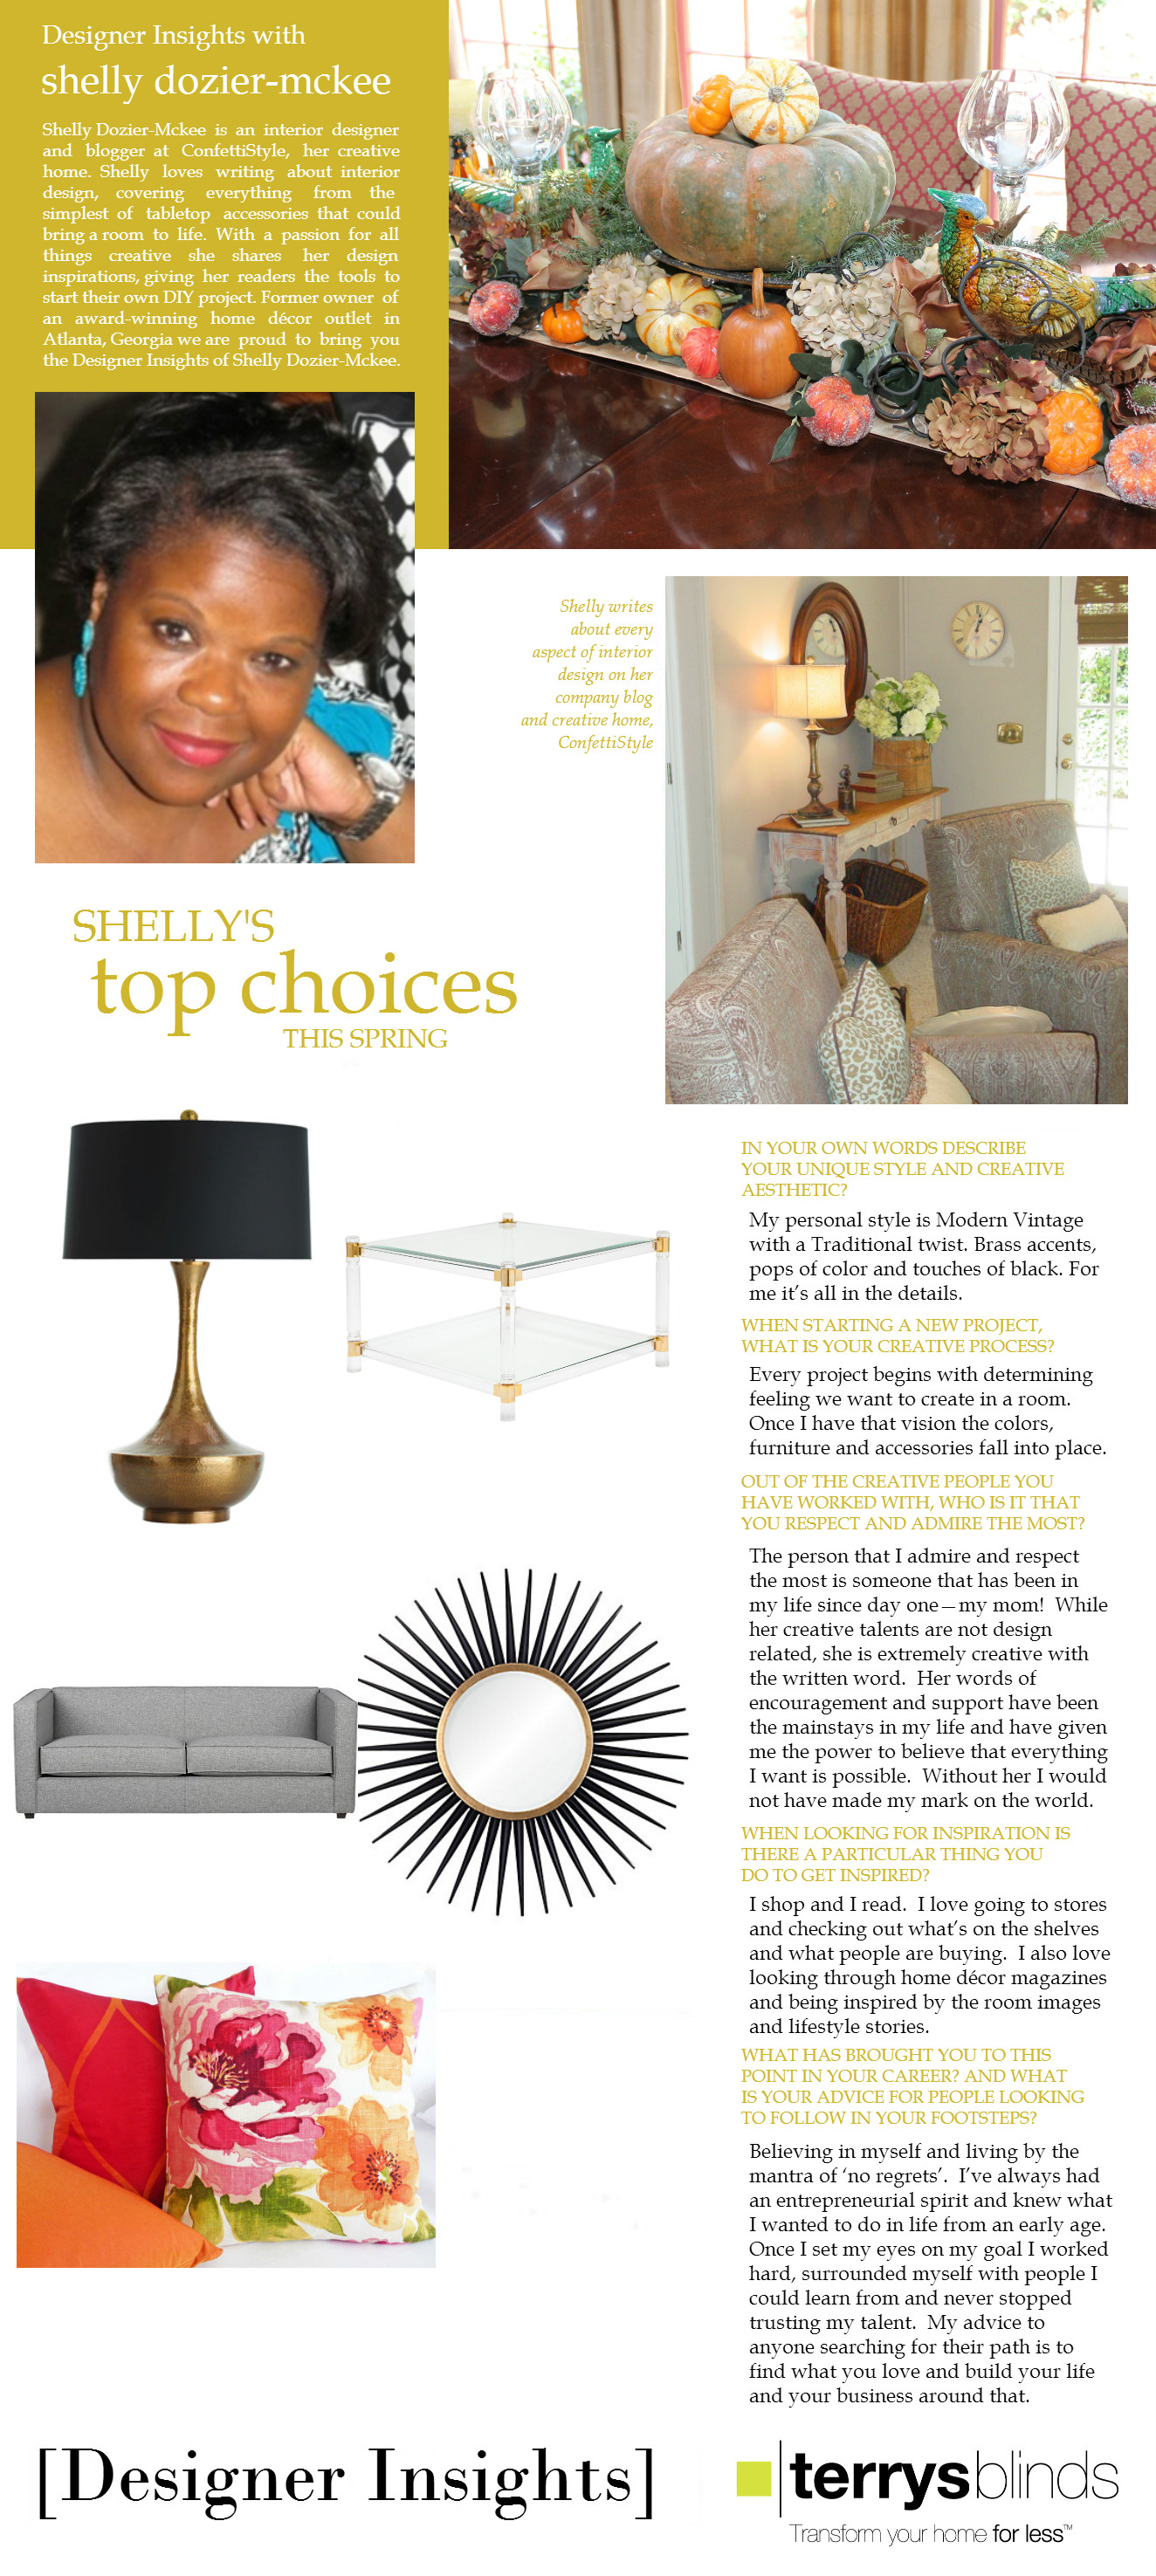 Designer-Insights-Shelly-Dozier-Mckee